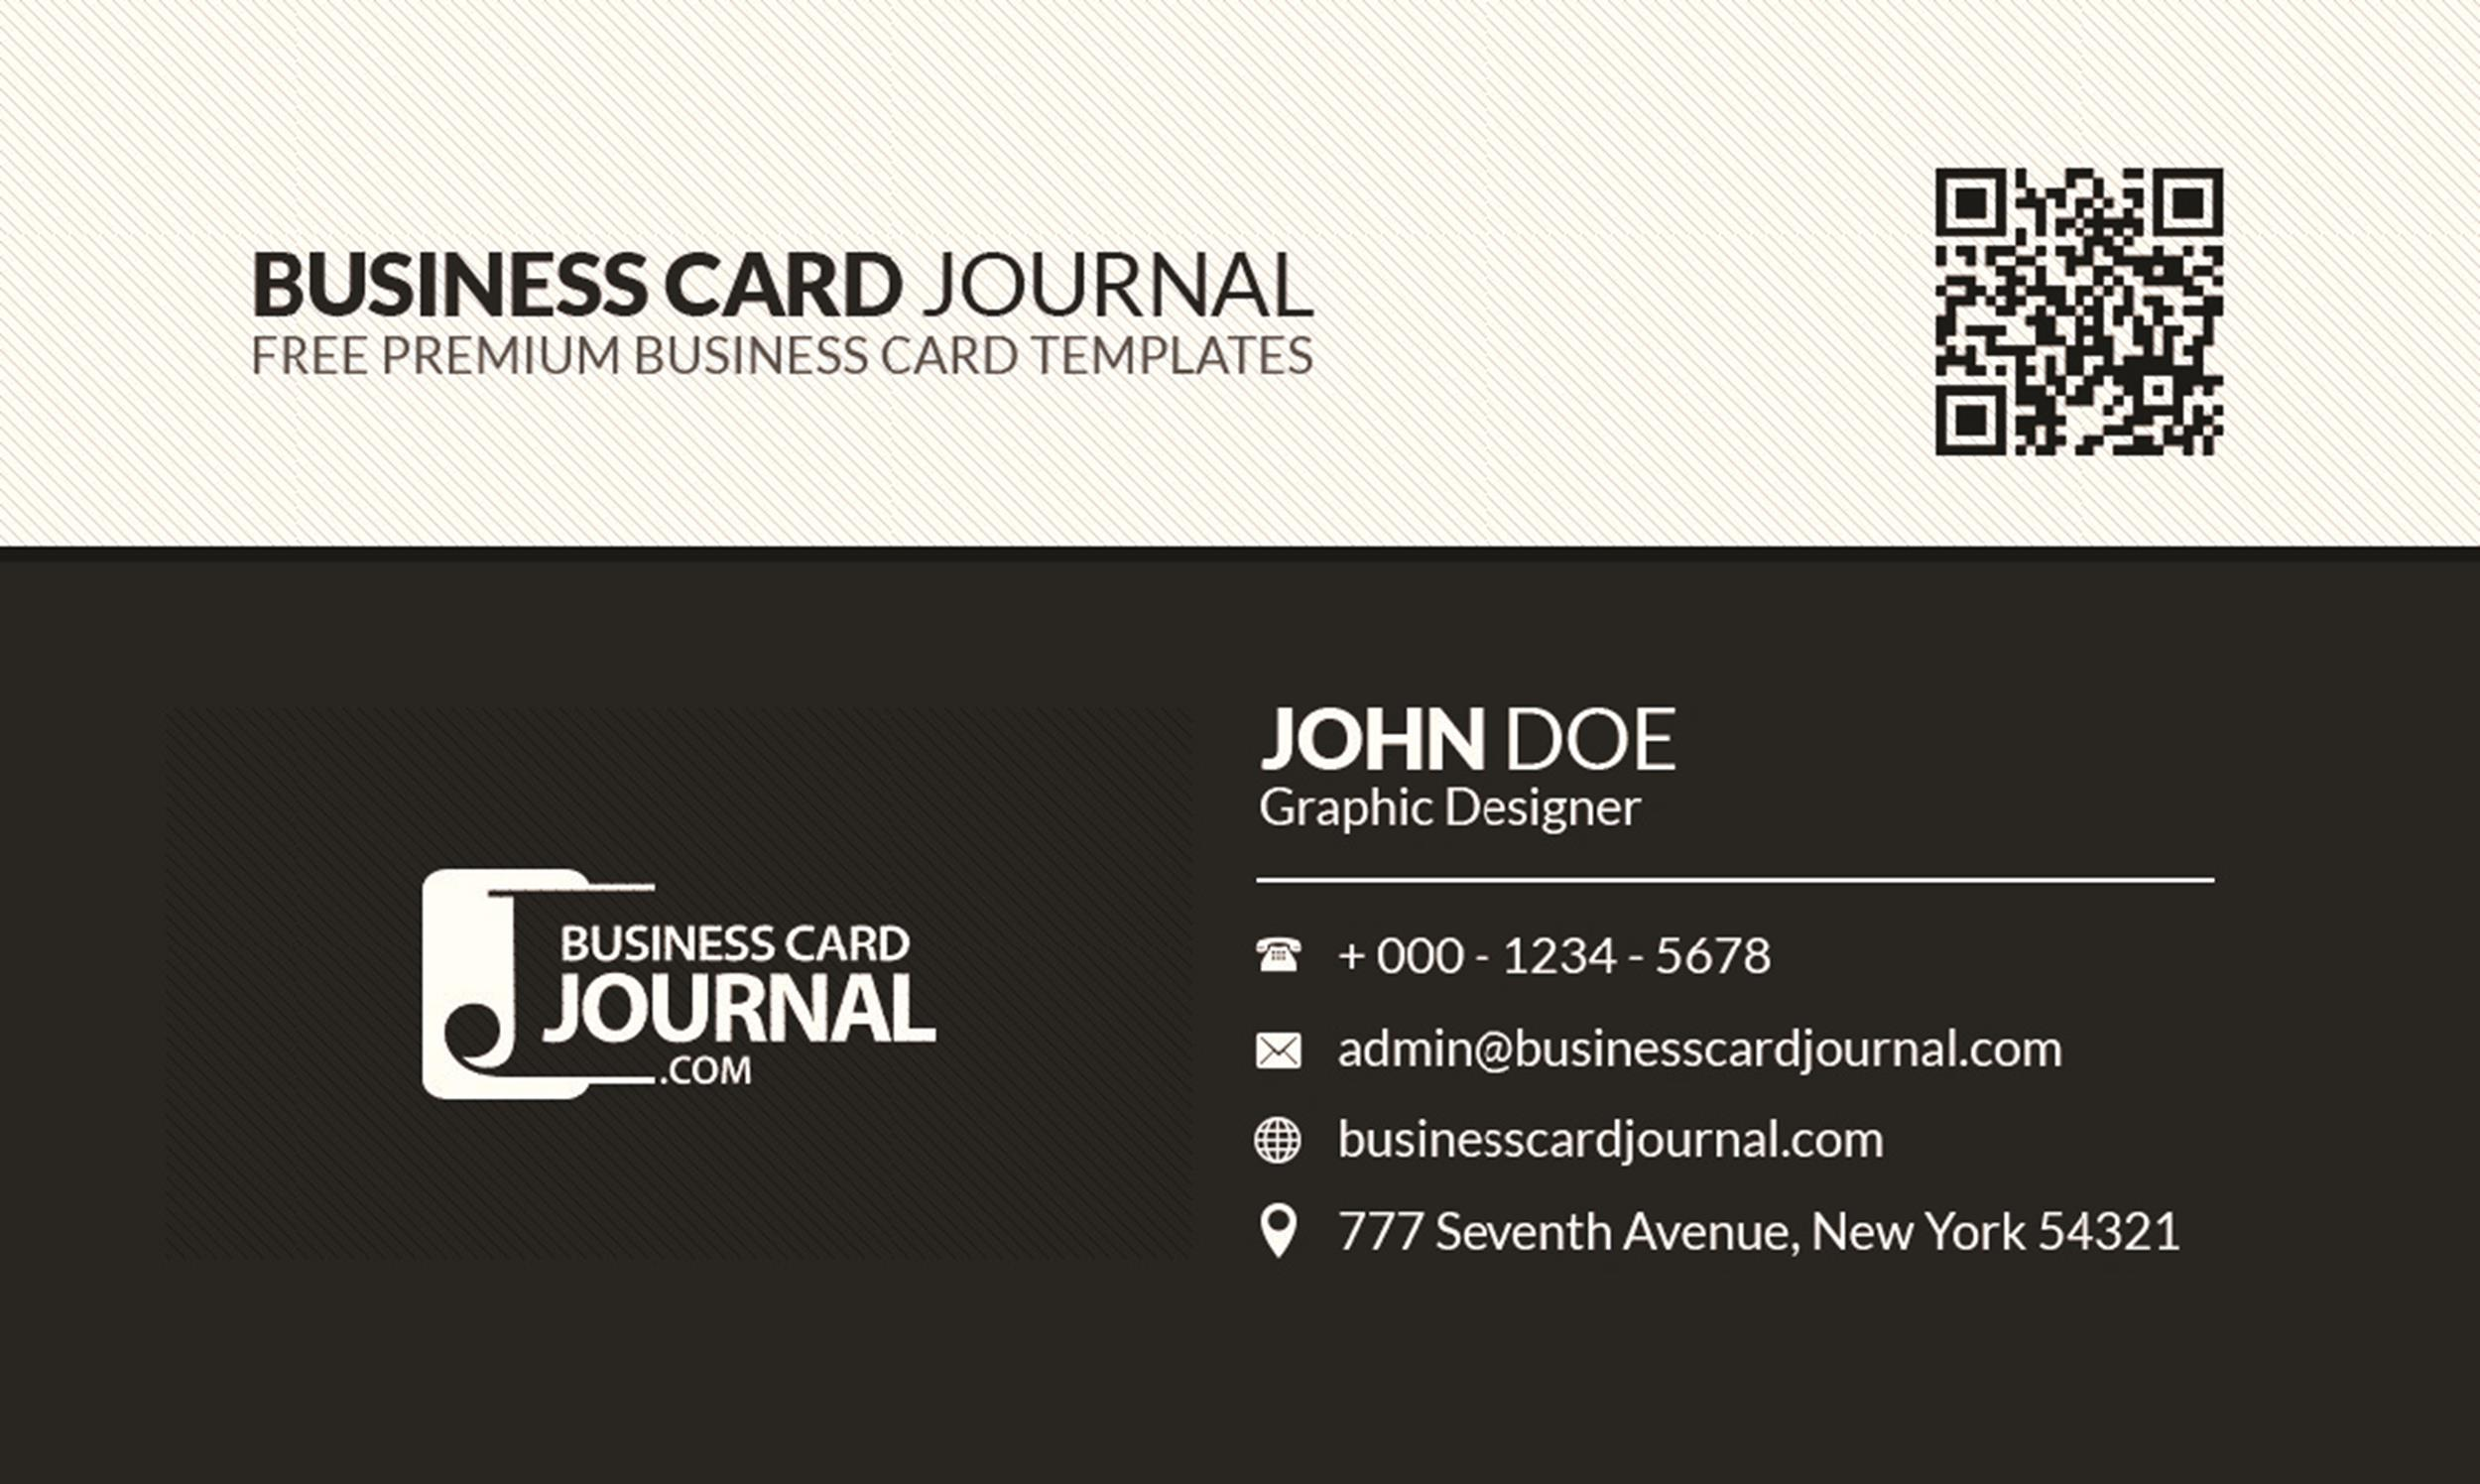 Free Business Card Templates Template Lab - Business card layout template